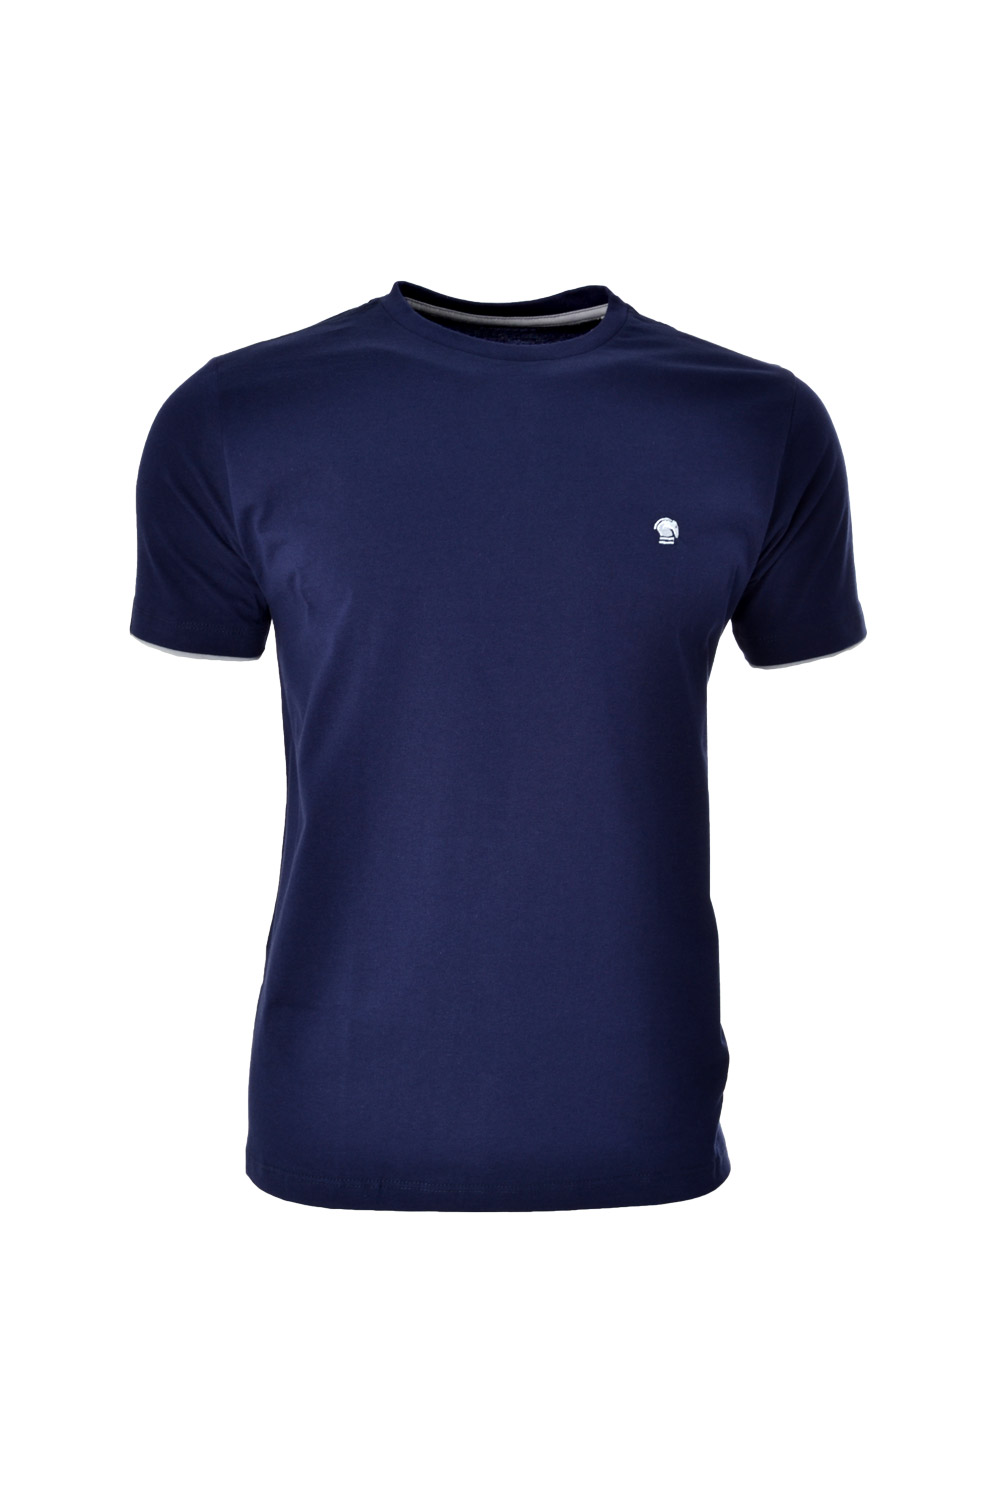 CAMISETA MC BLUES SUPER SLIM ALGODAO COMPOSE - AZUL MARINHO